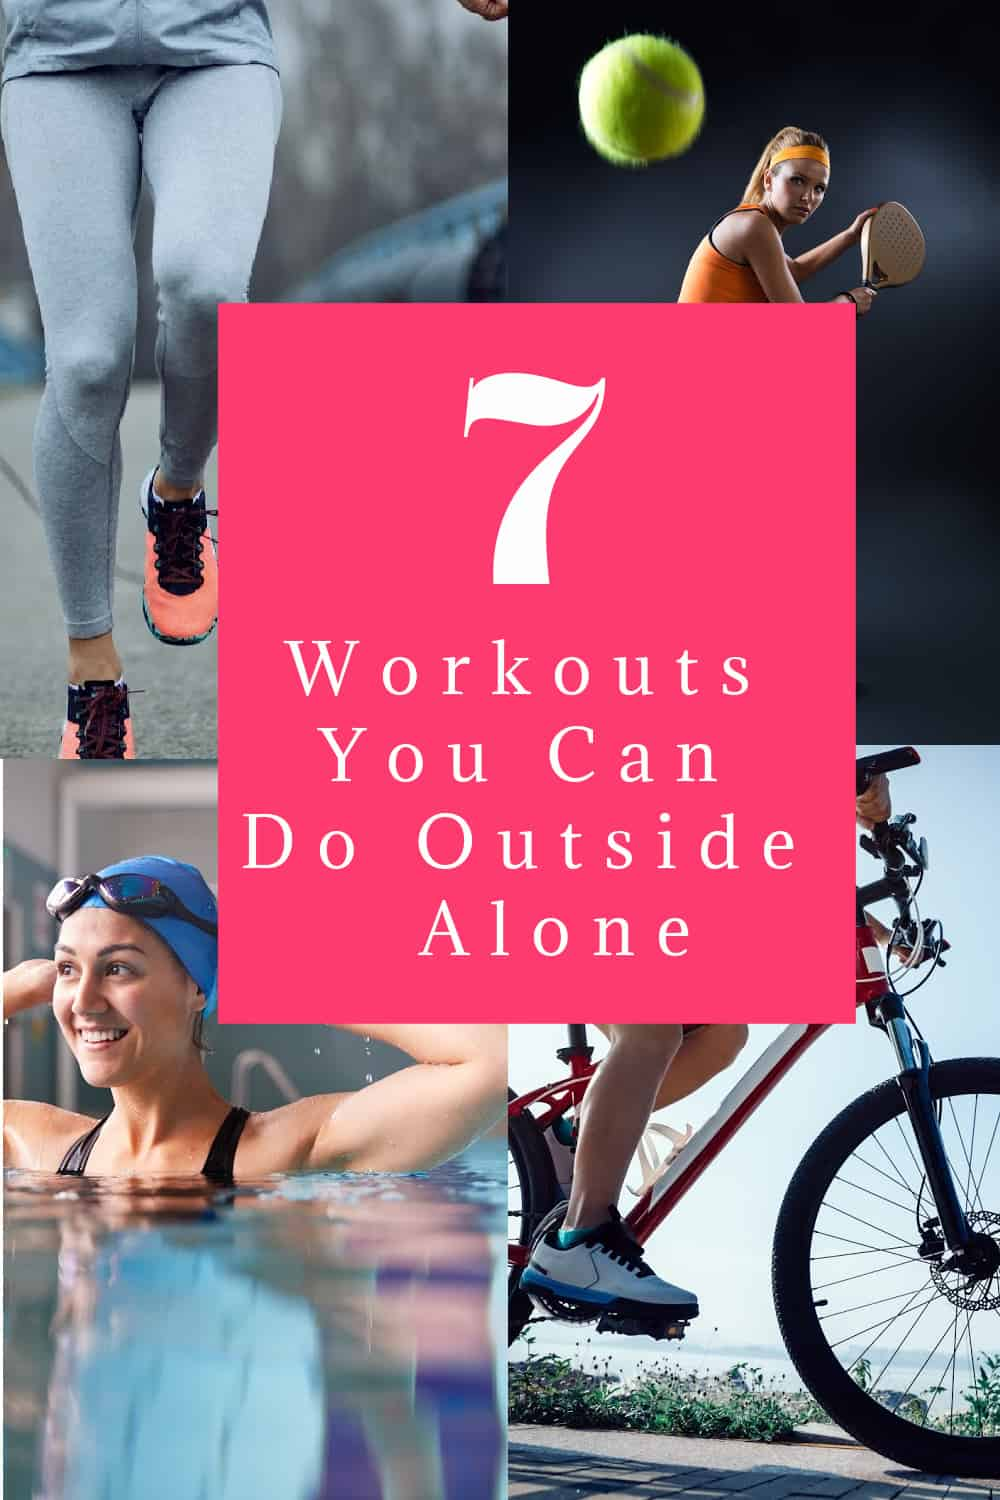 Worried about how you'll stay in shape when you can't get to the gym? Author and expert celebrity fitness trainer Oscar Smith share some great workouts you can do outside alone.